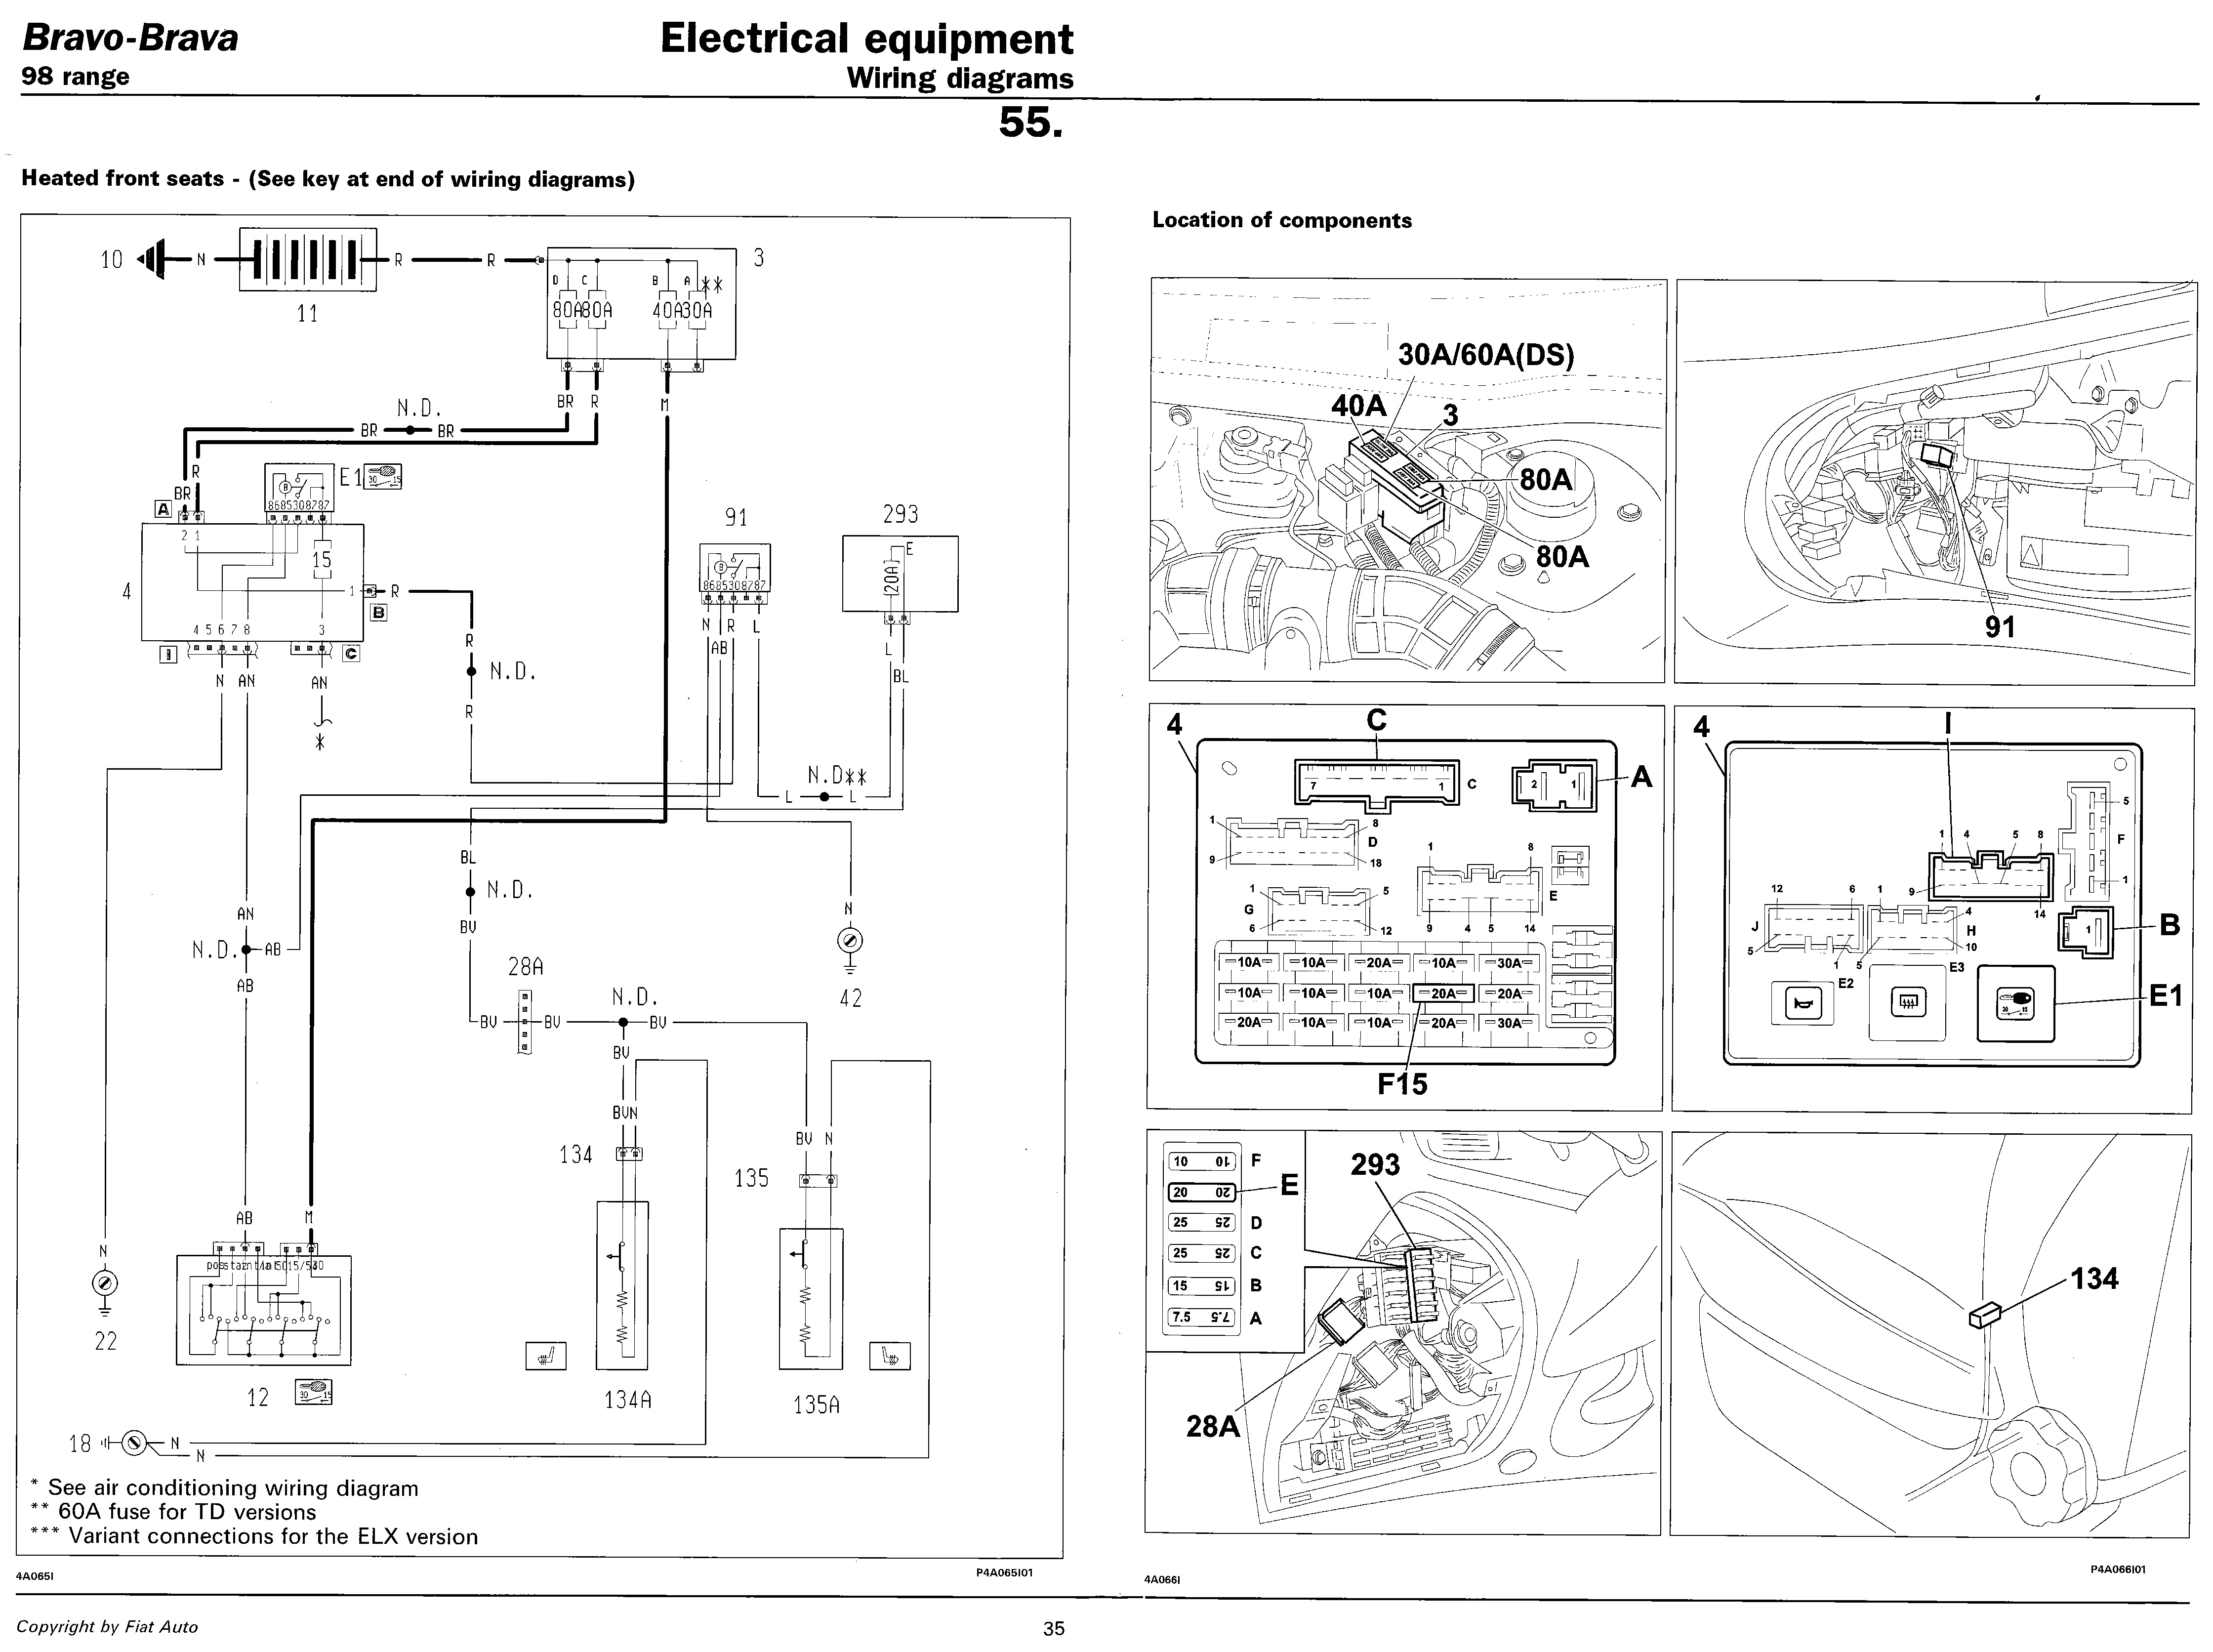 fiat stilo 1 6 16v wiring diagram